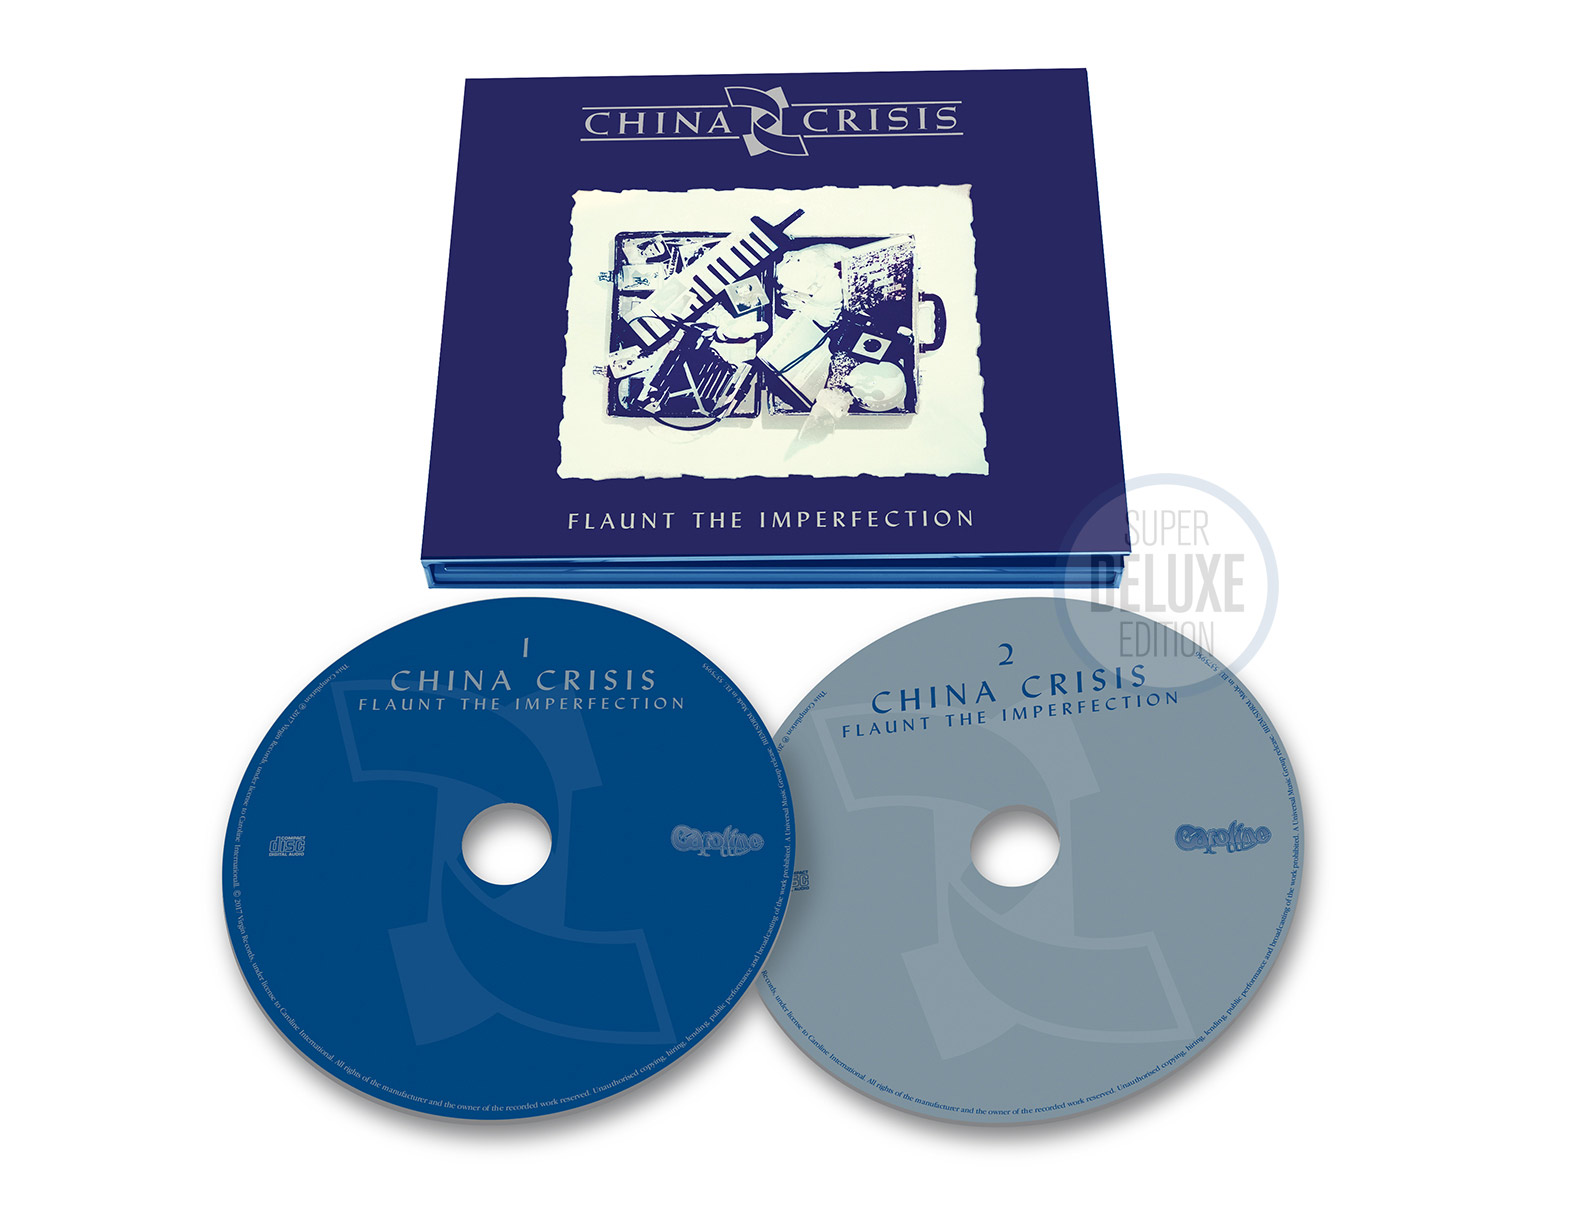 China Crisis / Flaunt the Imperfection 2CD deluxe reissue